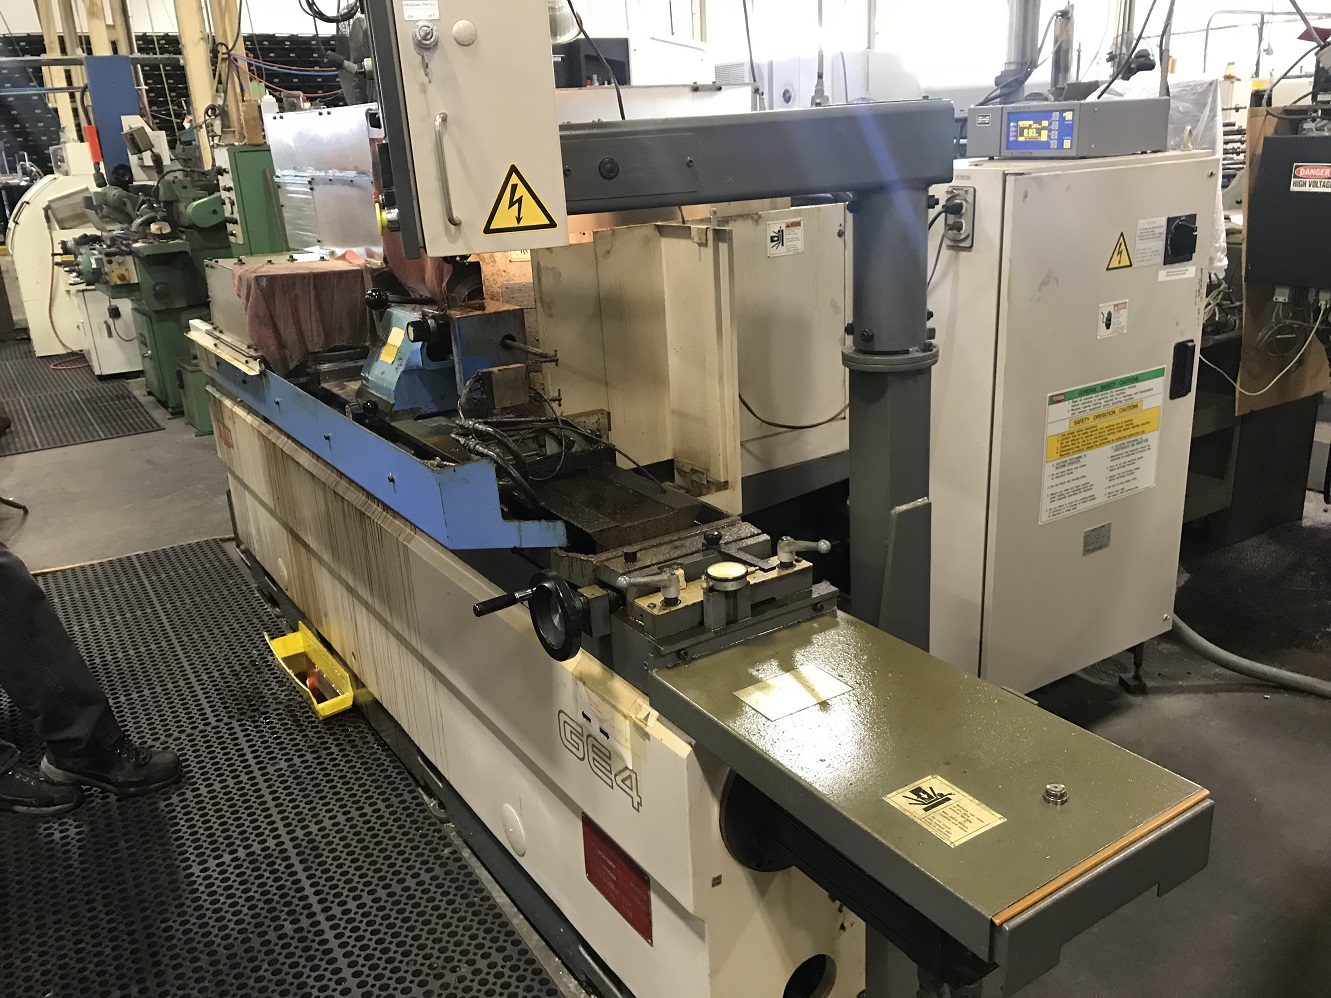 "Toyoda GE4A-100 CNC Angle Head Cylindrical Grinder, GC32 Control, 13"" Swing, 39"" Centers, 18"" Wheel, Shoulder Attach, Auto Wheel Balancing System, (2) Wheel Mounts, T/S, 1998"